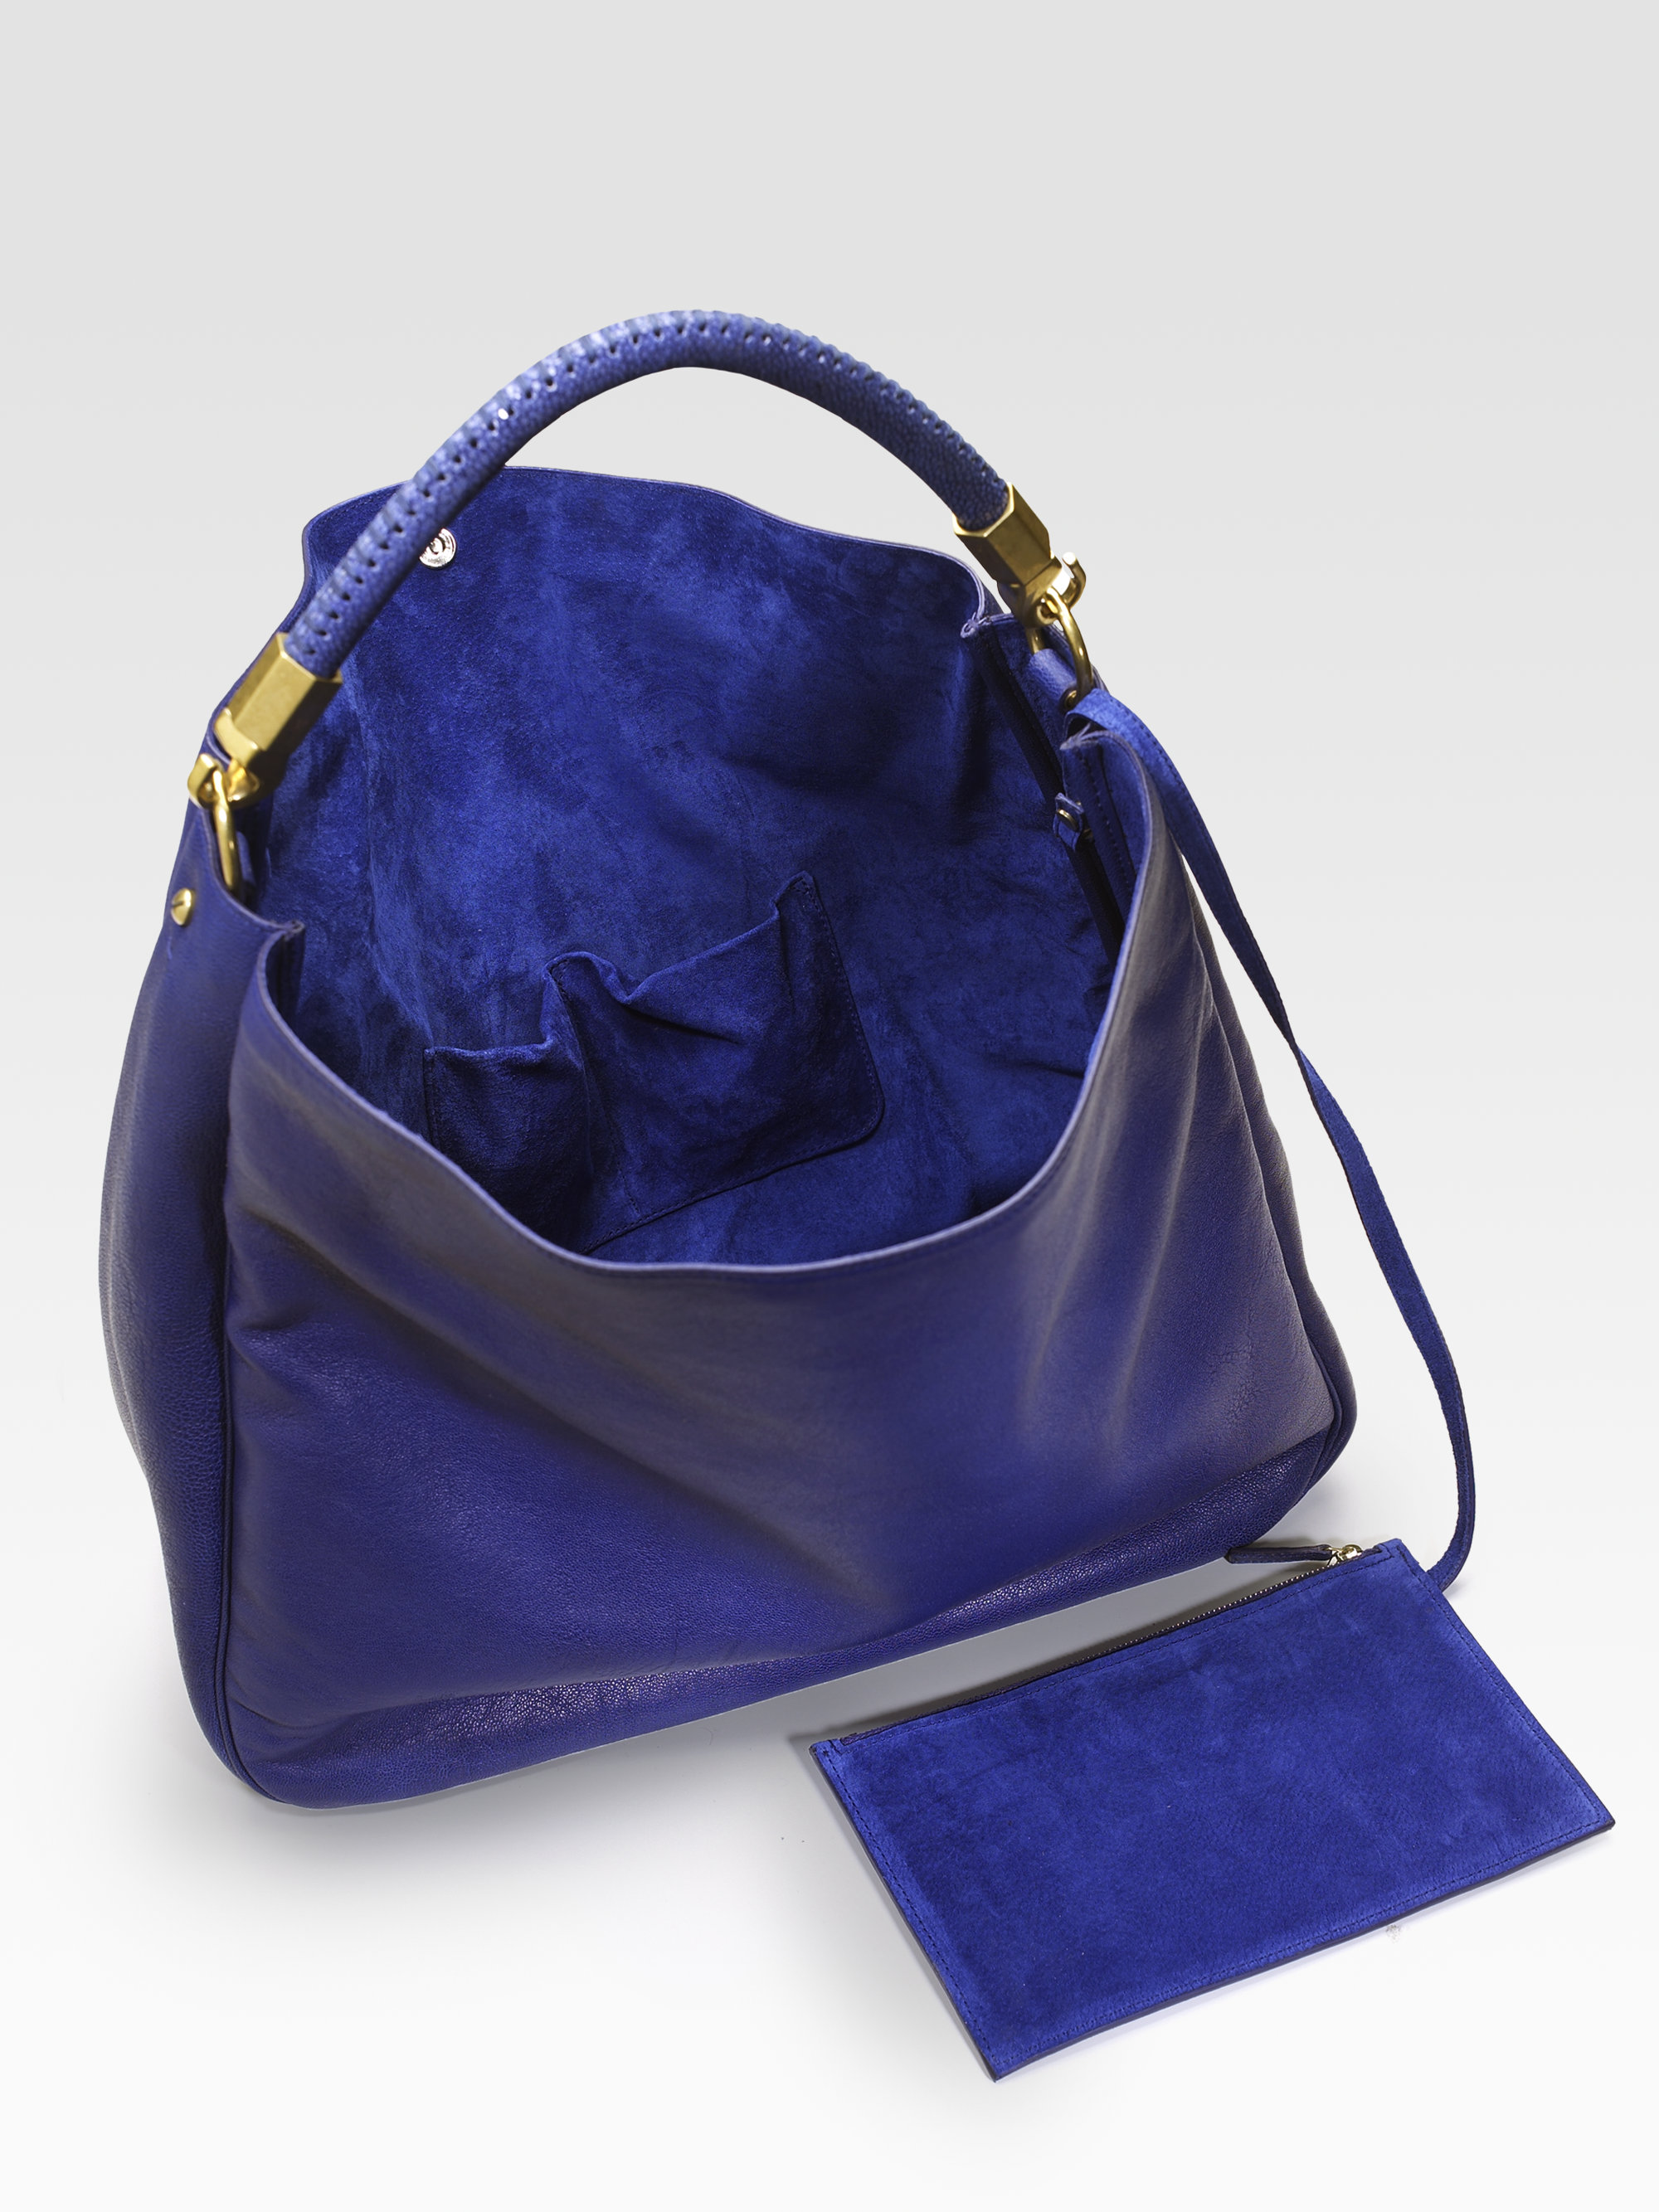 Saint Laurent Ysl Large Leather Roady Hobo Bag In Blue Lyst